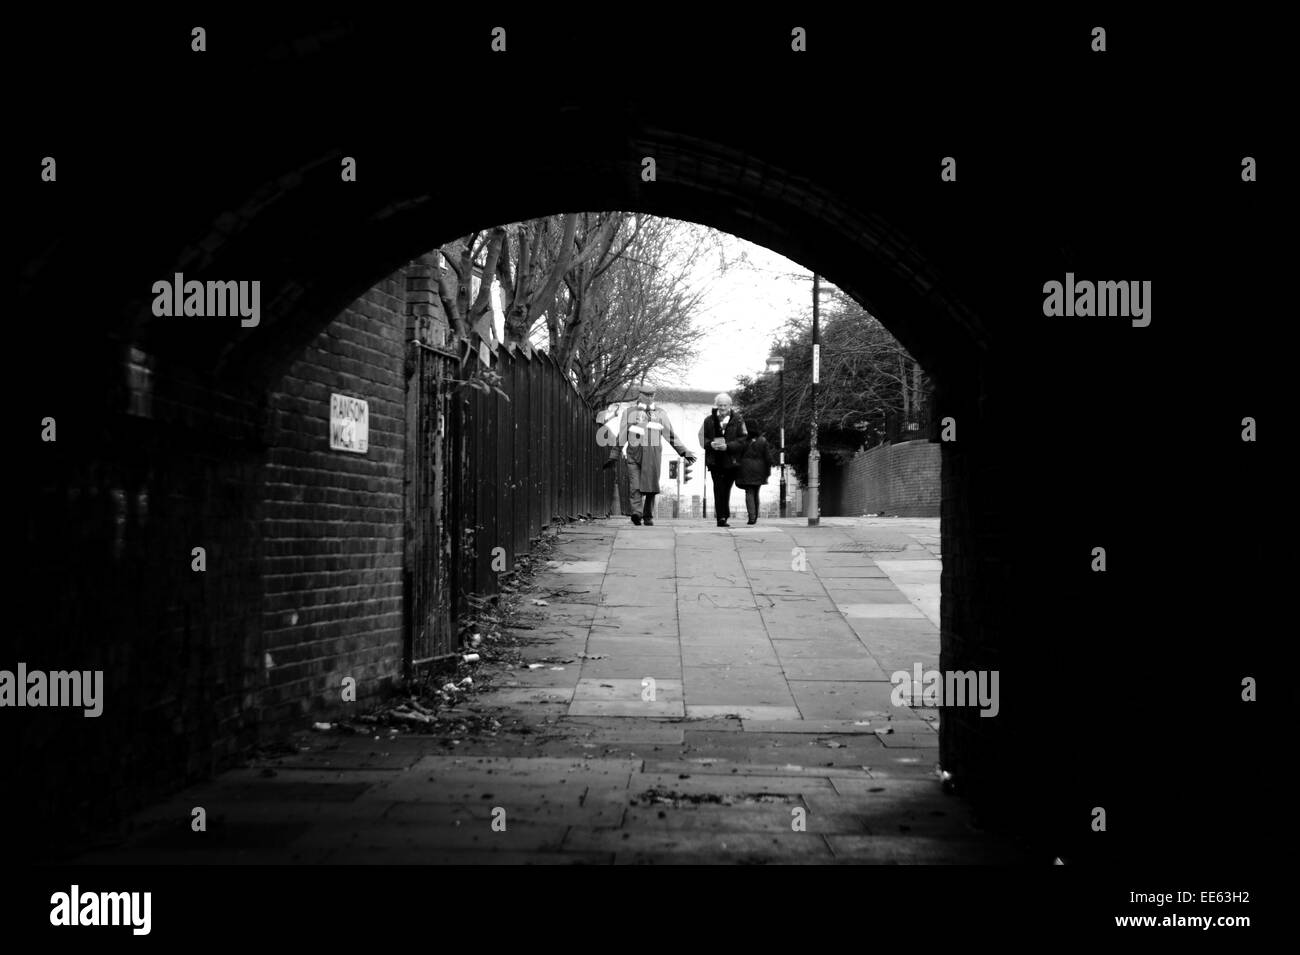 Charlton South East London UK January 2015 Football fans arriving for Charlton Athletic match Photograph taken by - Stock Image